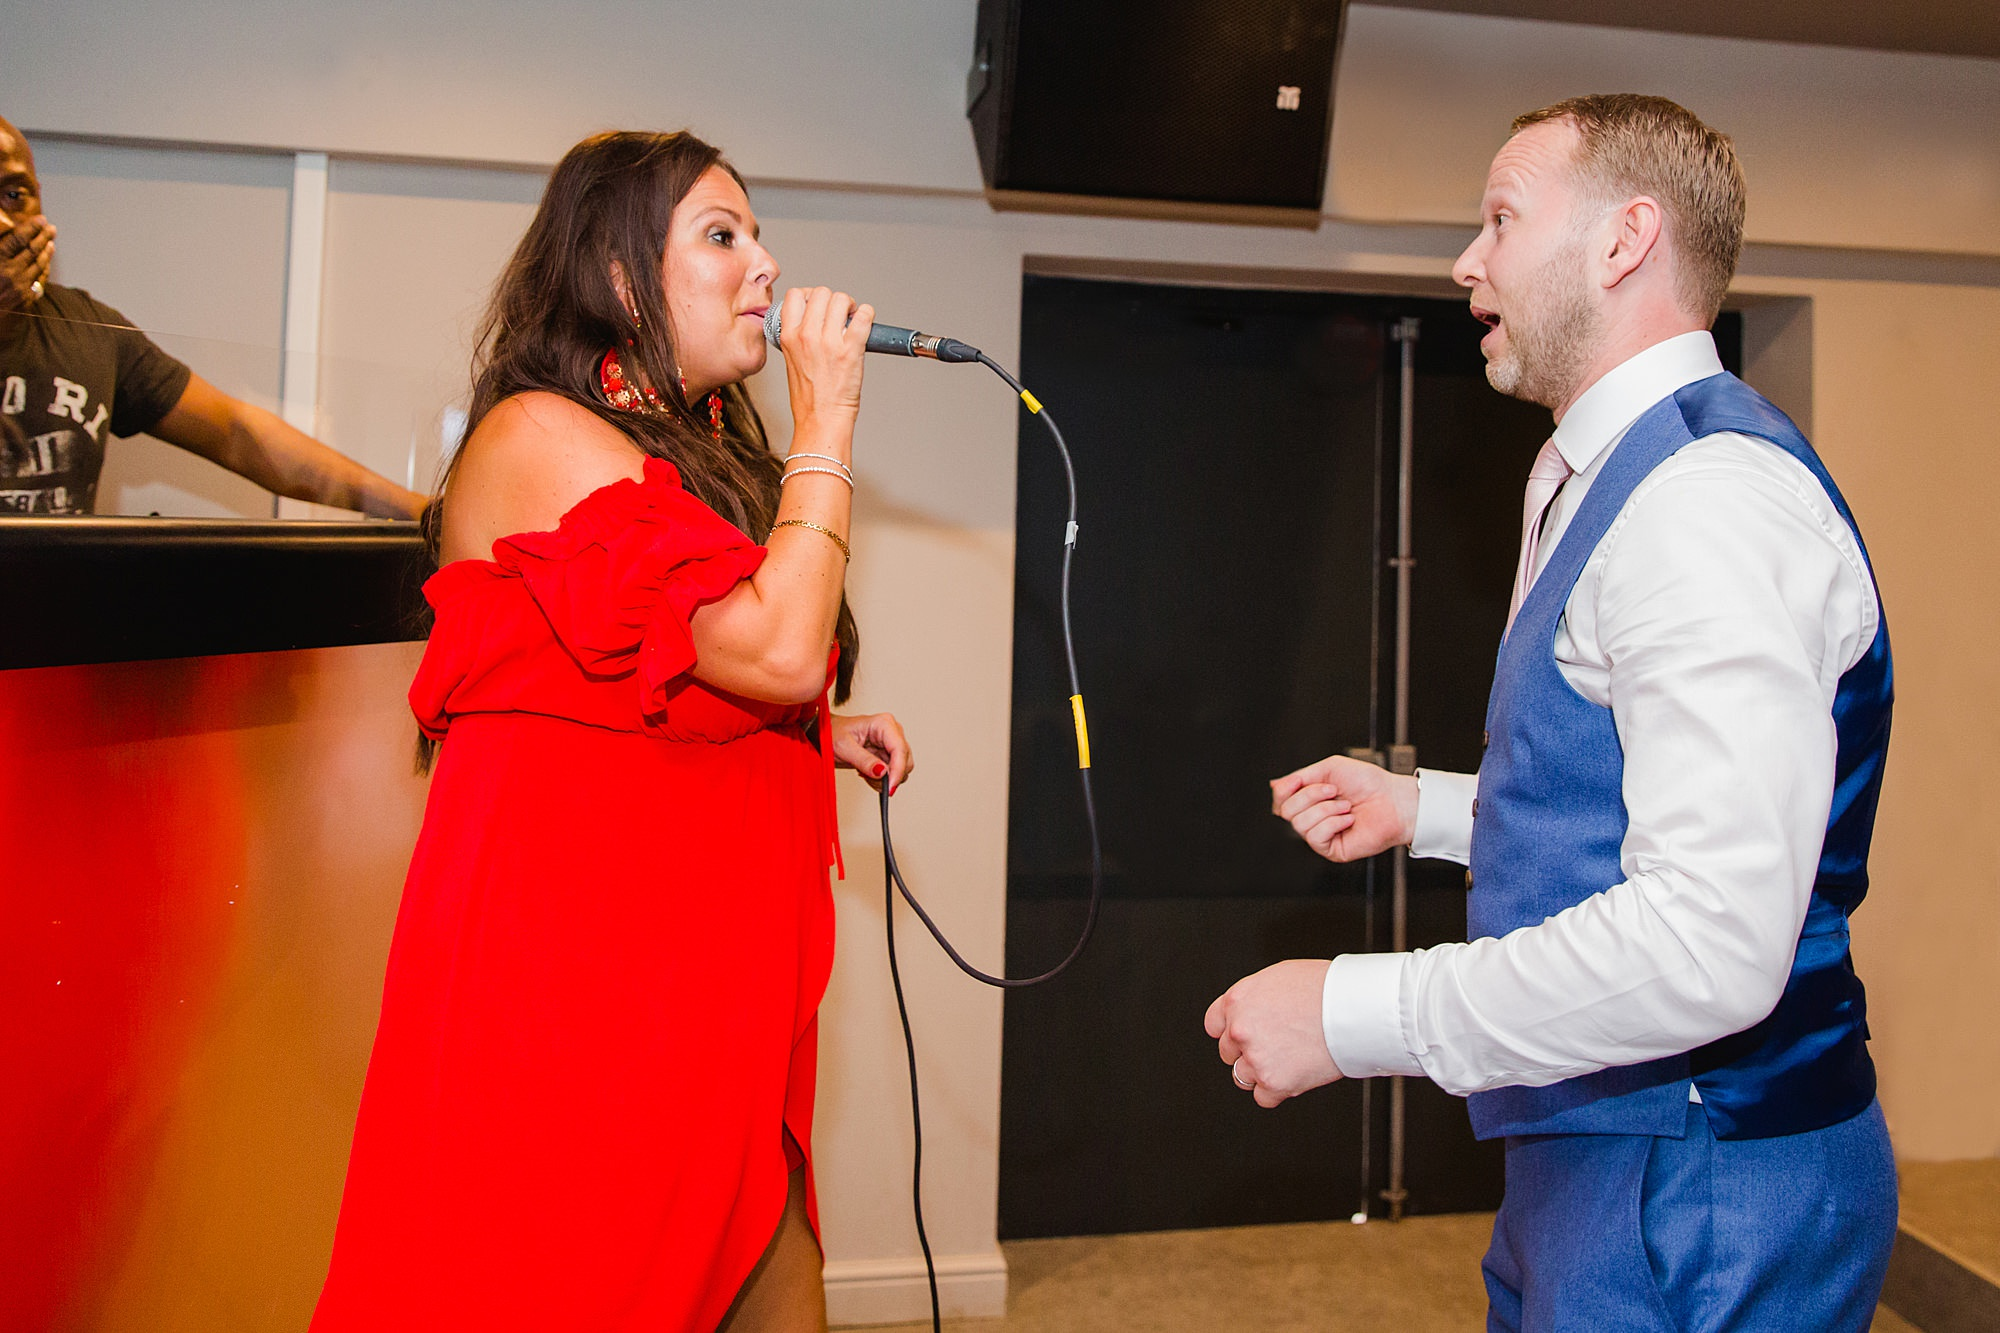 Writtle university college wedding guest sings for groom